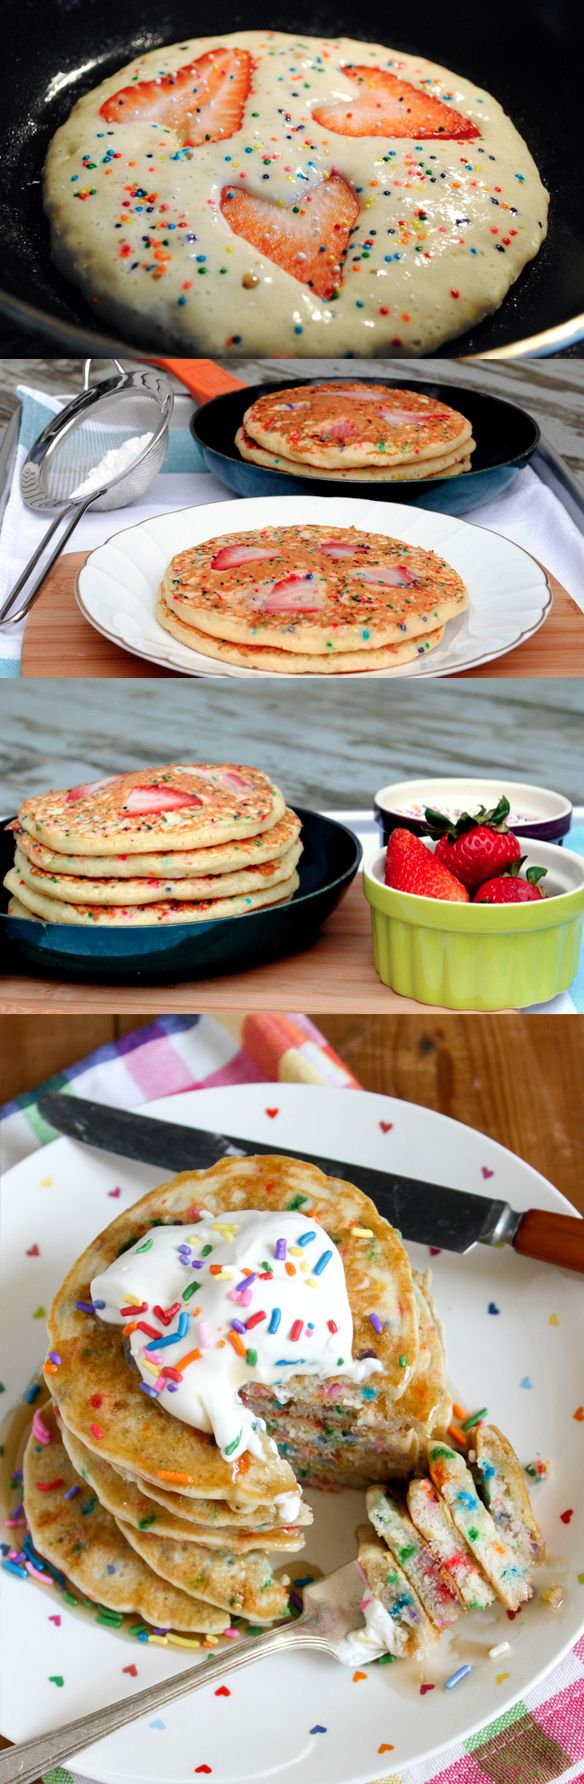 Happy Birthday pancakes! This recipe is for buttermilk breakfast pancakes without a